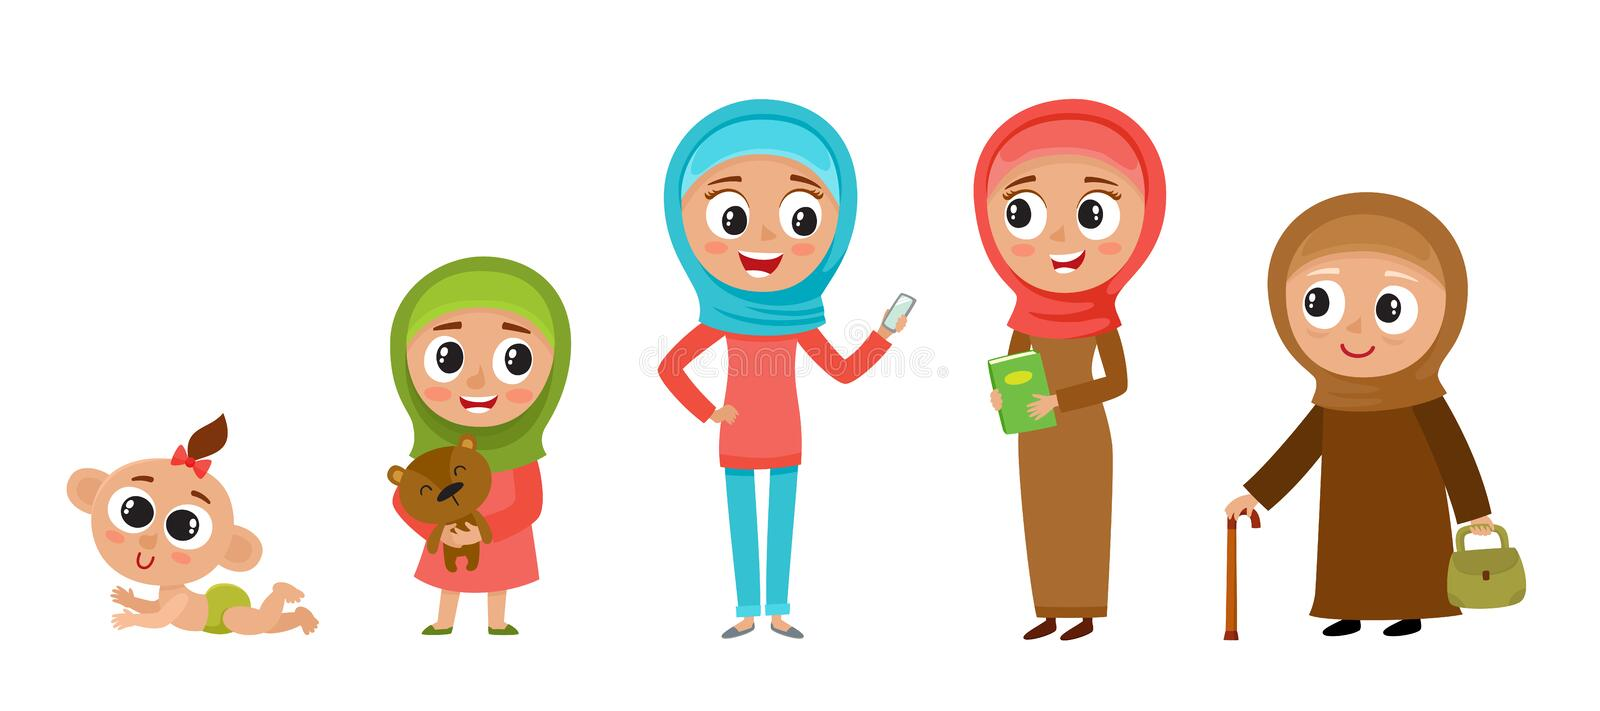 Muslim woman in cartoon style isolated on white. royalty free illustration